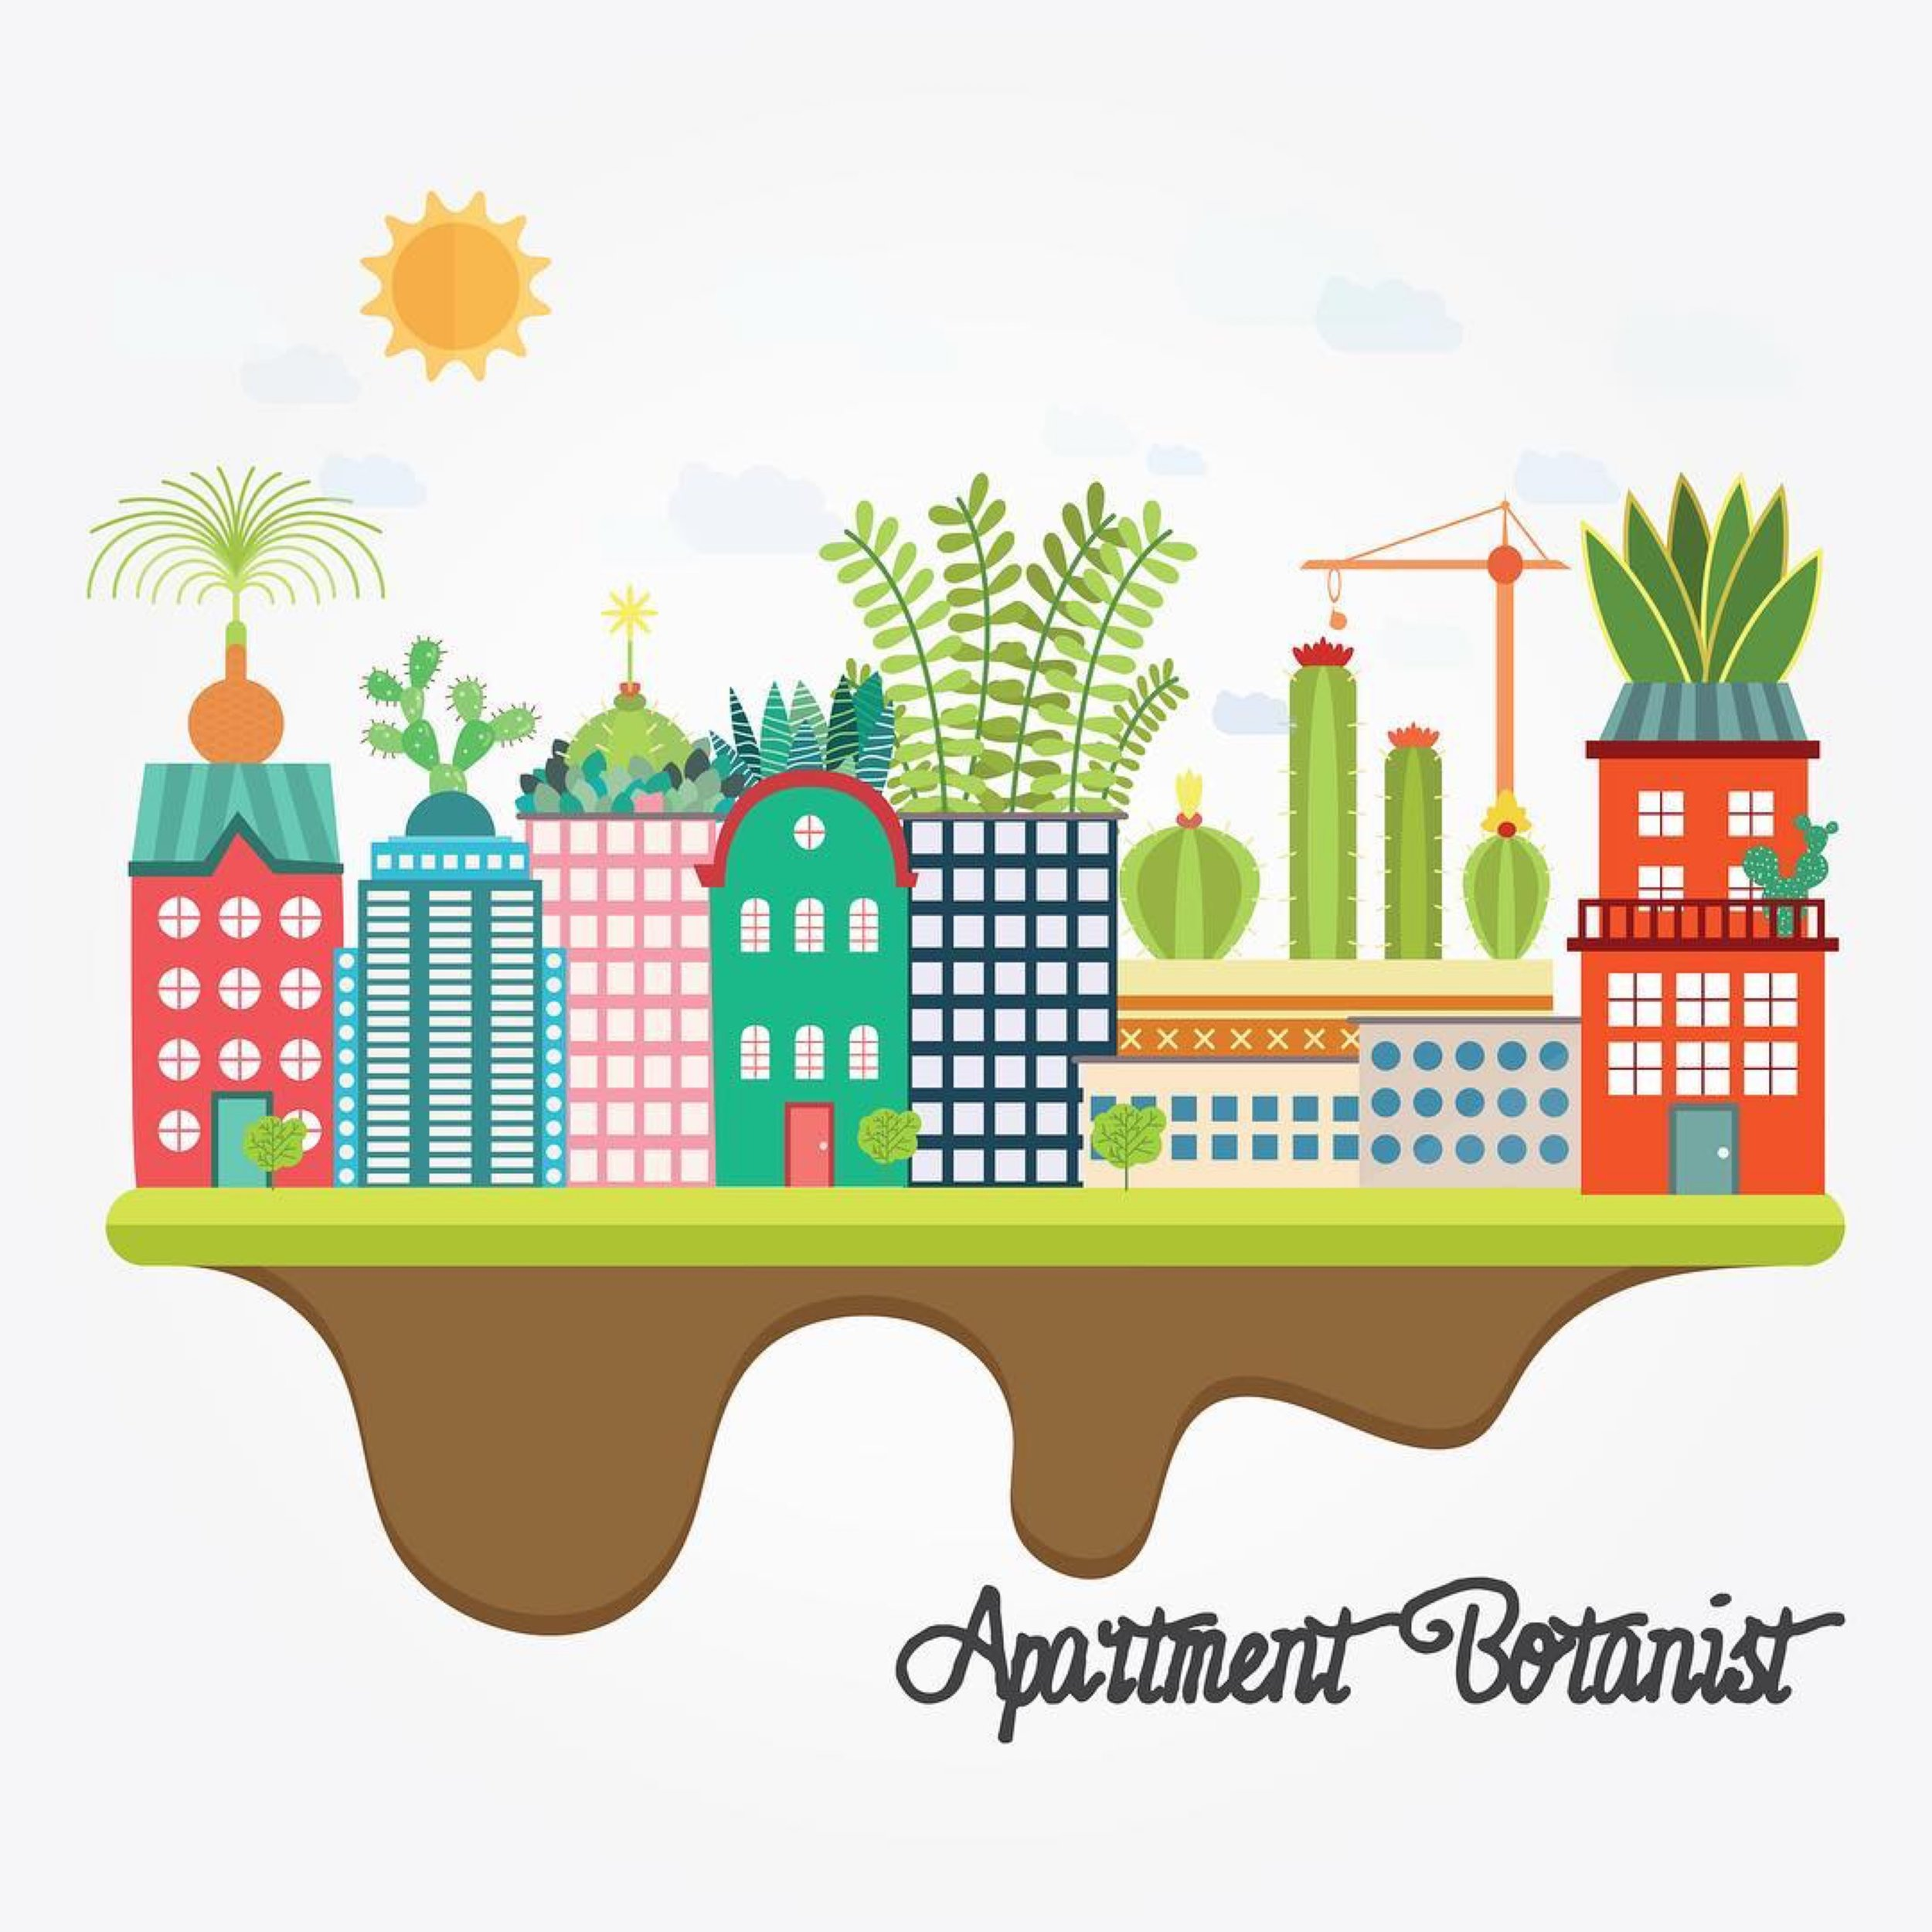 The Apartment Botanist logo